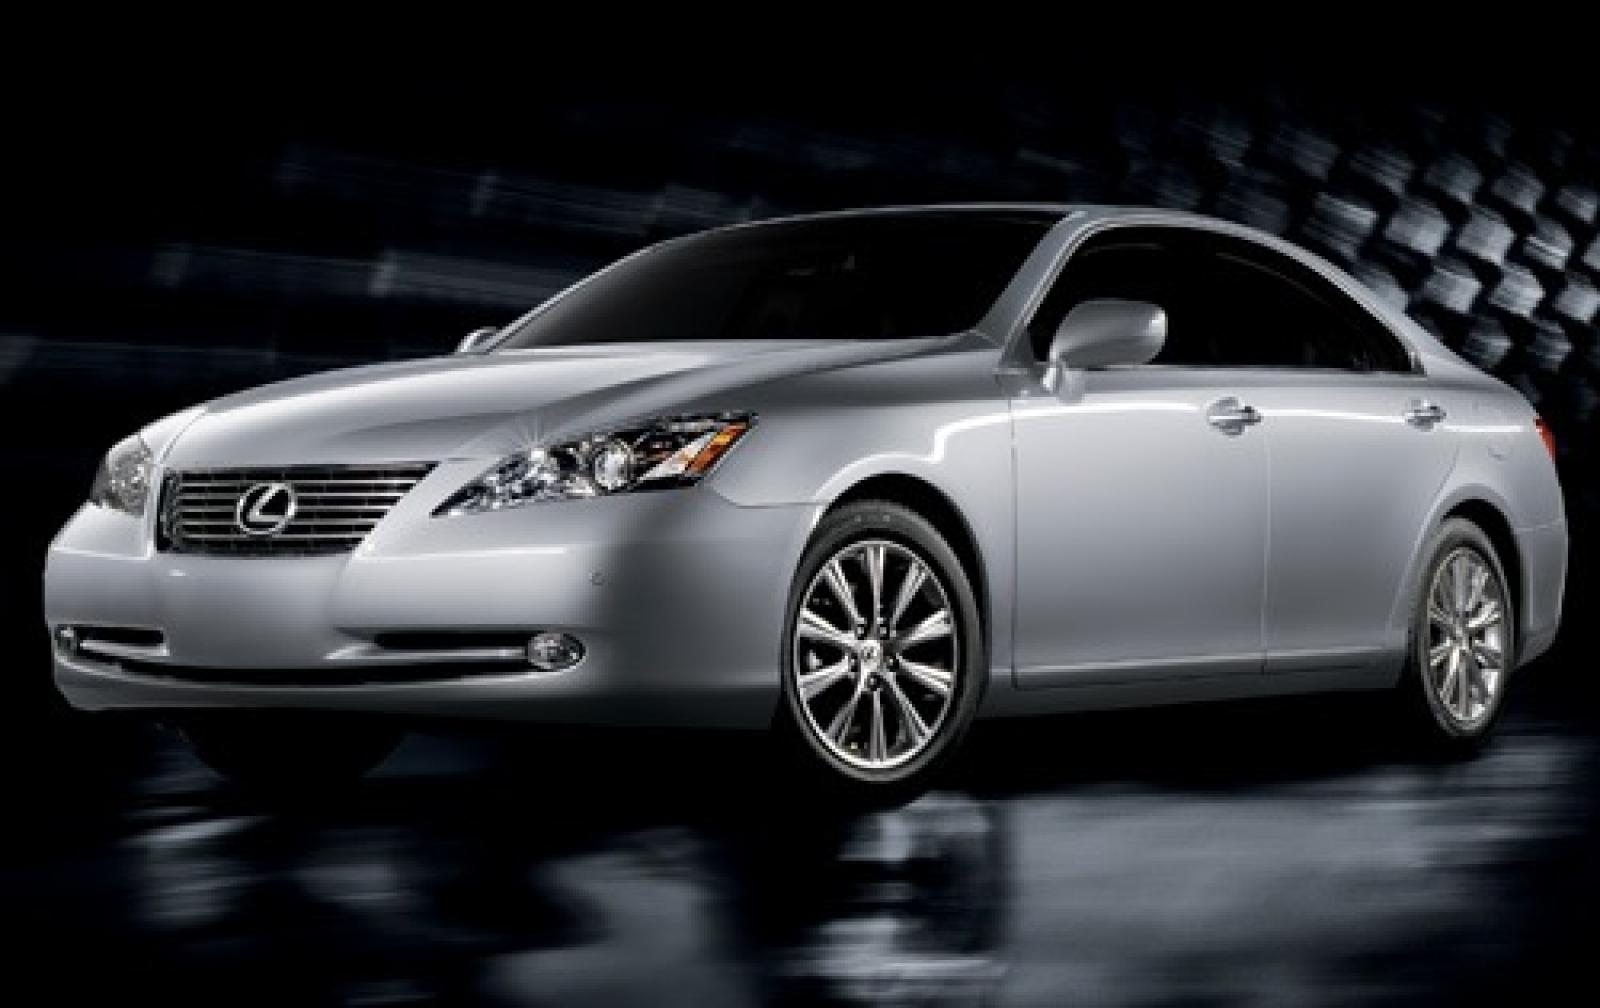 2007 lexus es 350 information and photos zombiedrive. Black Bedroom Furniture Sets. Home Design Ideas